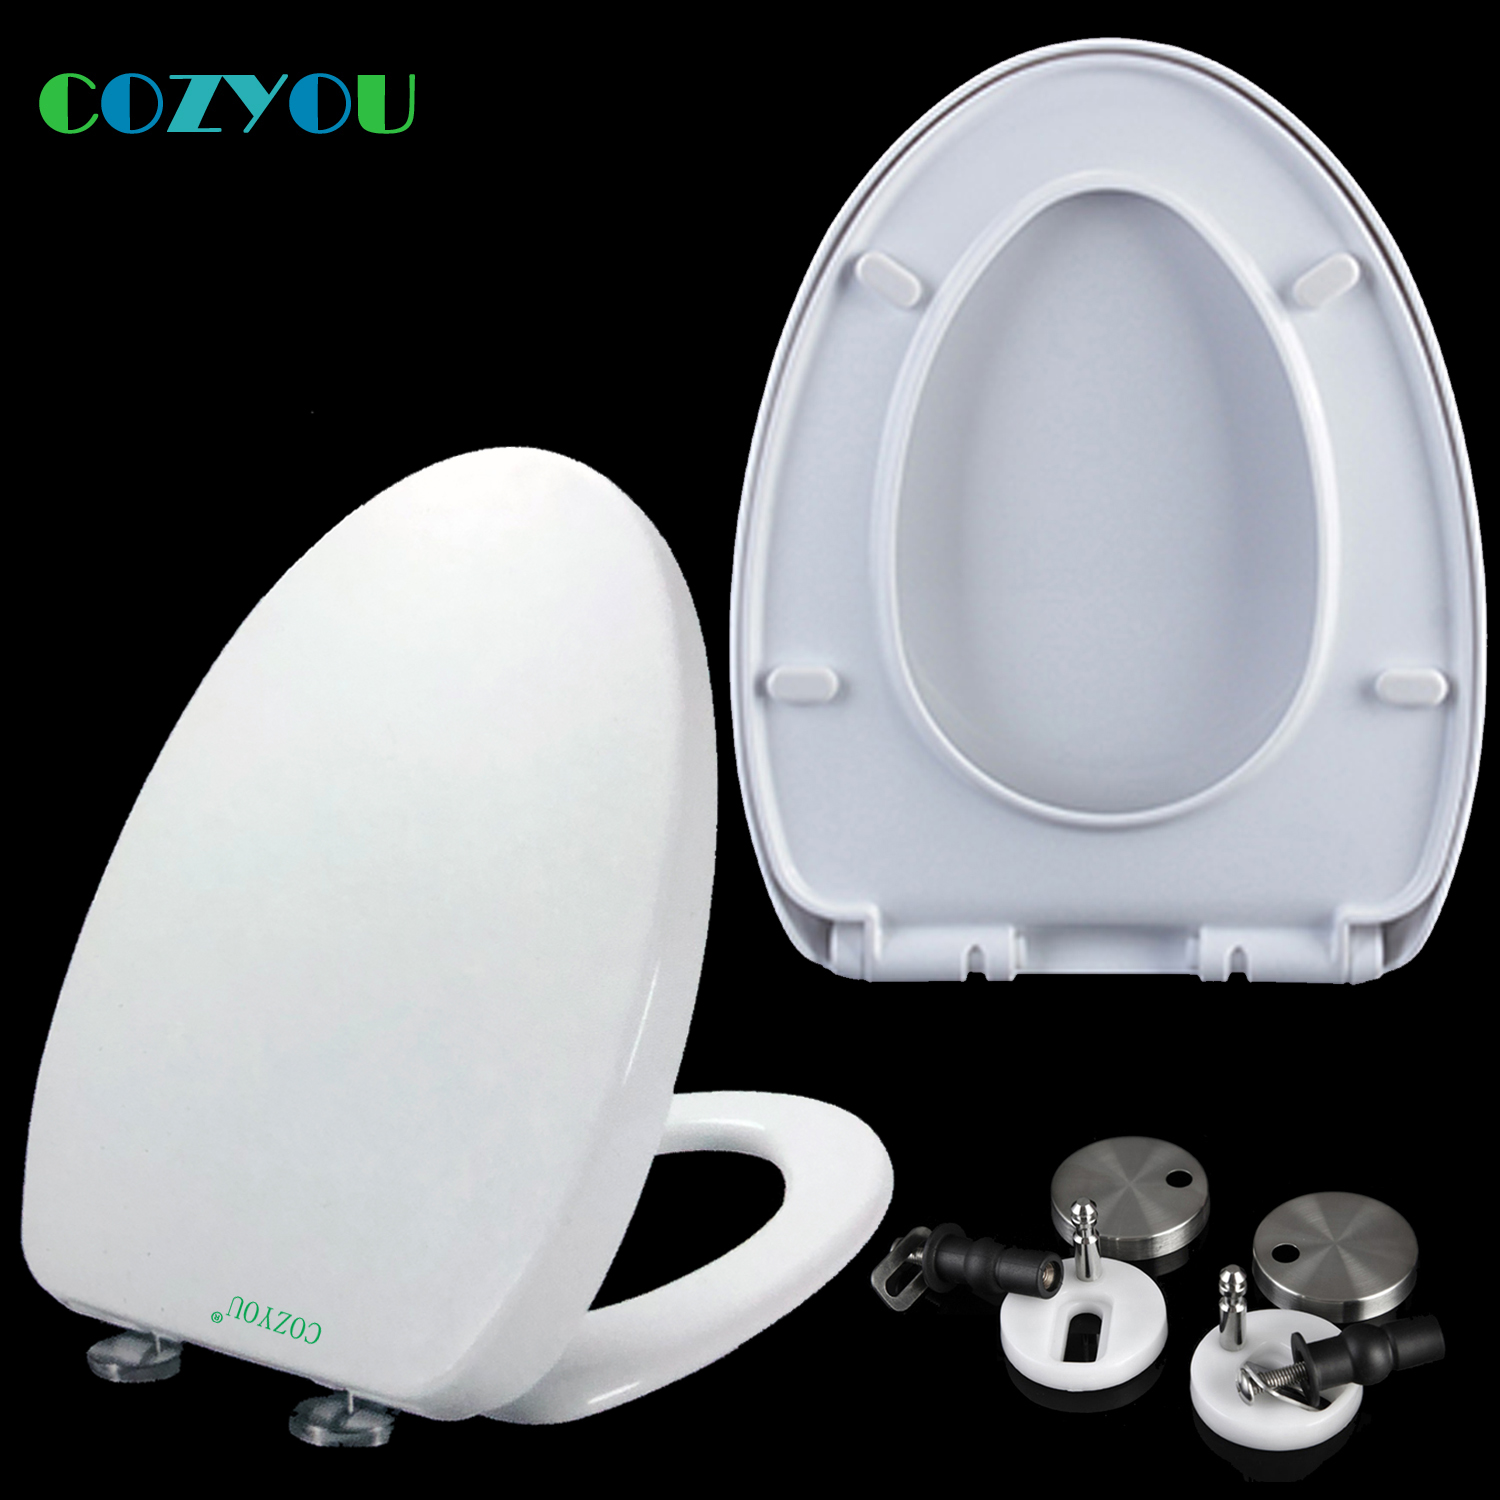 COZYOU PP Toilet seat V style soft Close Double button Quick-Release Length 450mm - 500mm Width 360mm - 370mm GBP17312SVCOZYOU PP Toilet seat V style soft Close Double button Quick-Release Length 450mm - 500mm Width 360mm - 370mm GBP17312SV